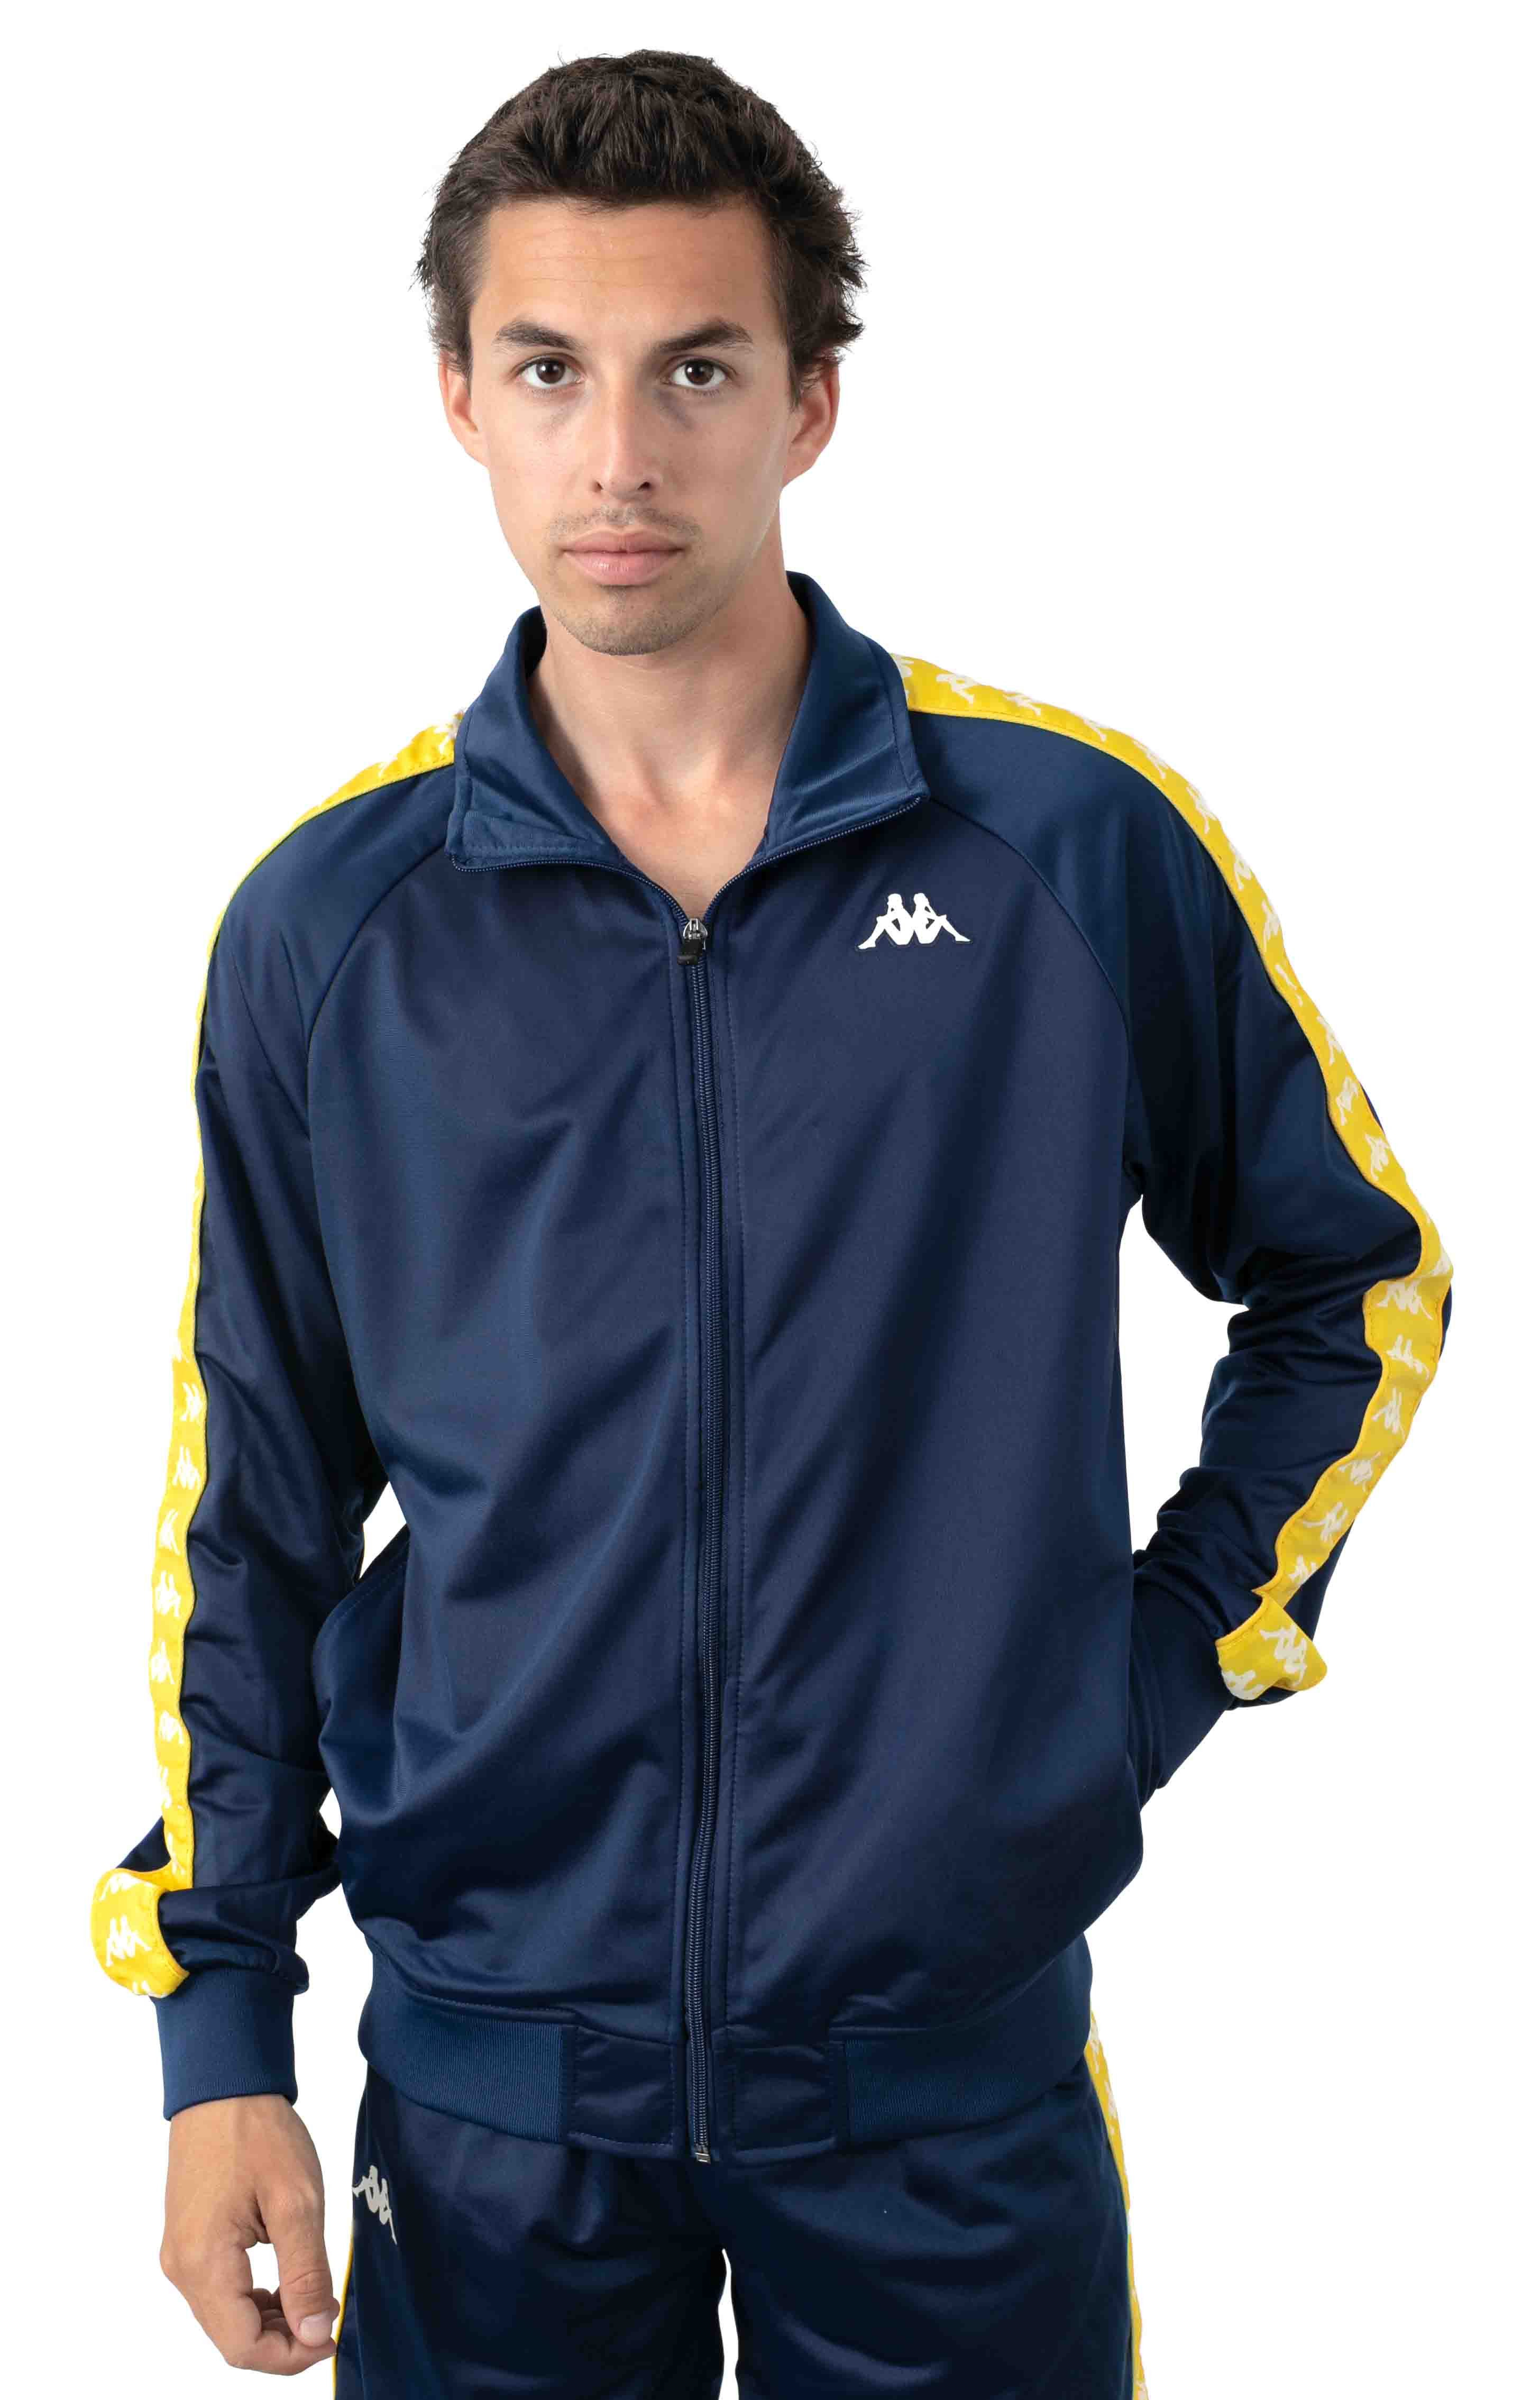 222 Banda Anniston Jacket - Blue Mid/Yellow Yolk